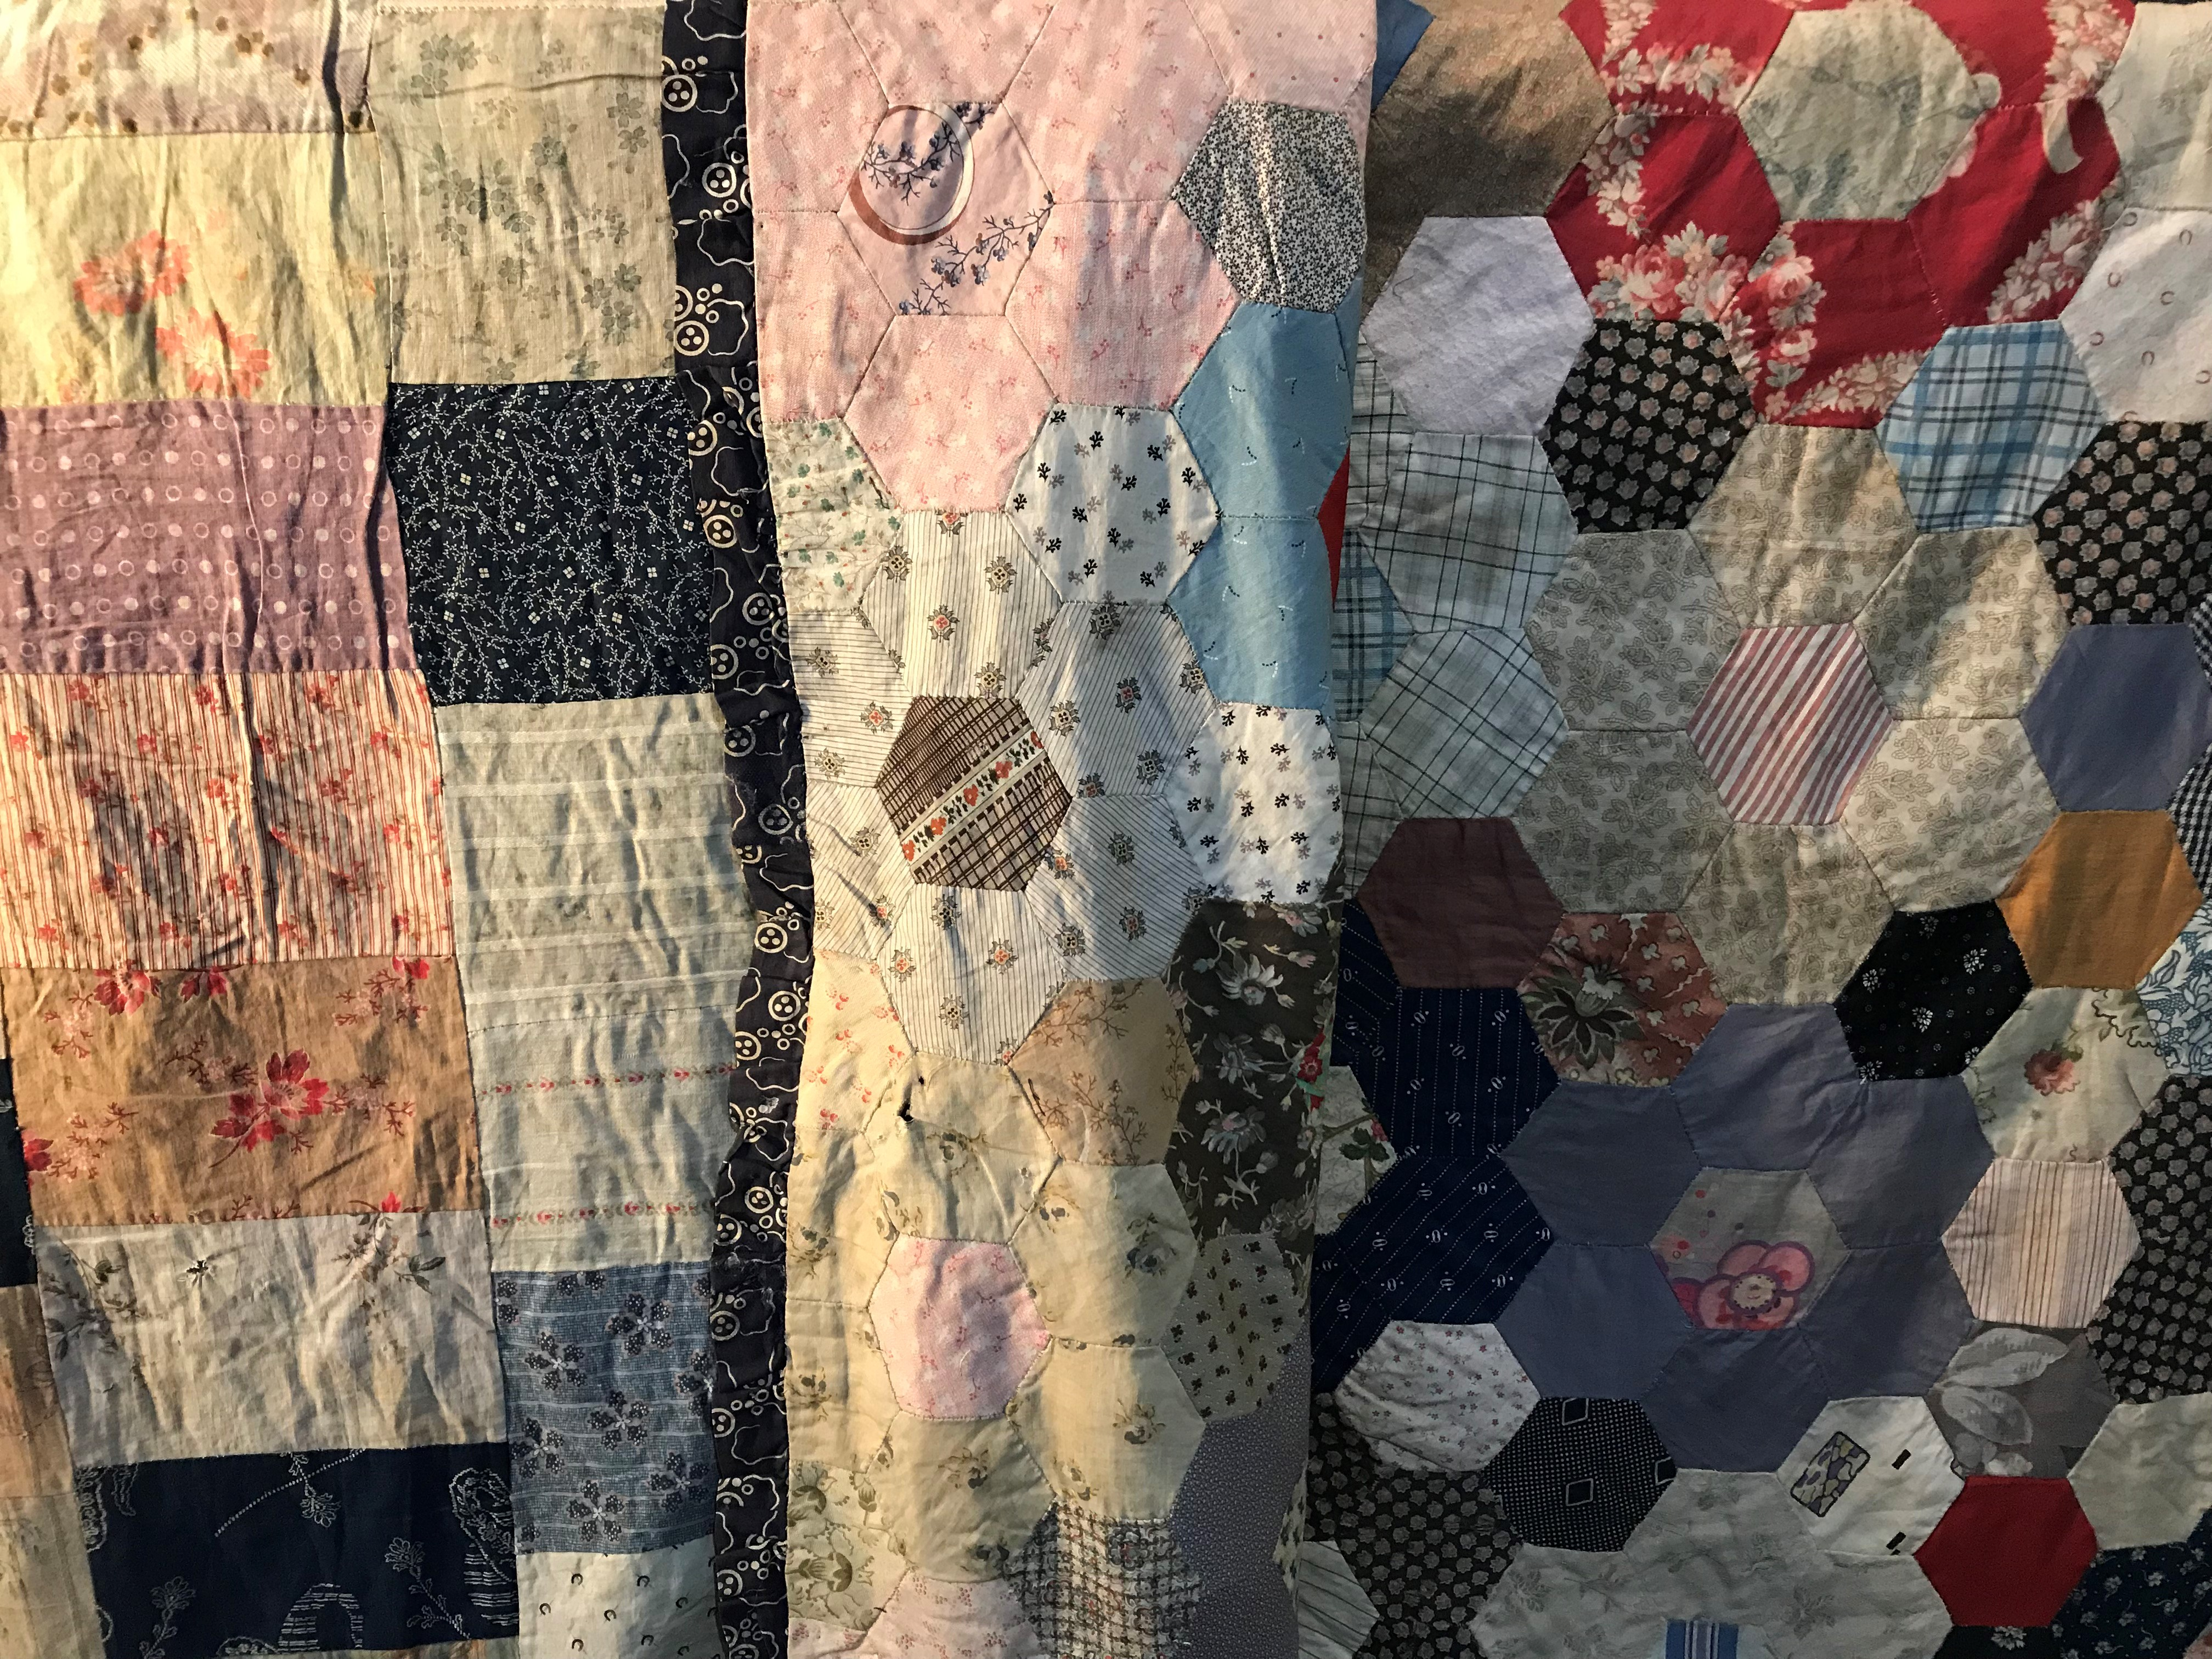 Quilt detail on display in Ark 2018 (002